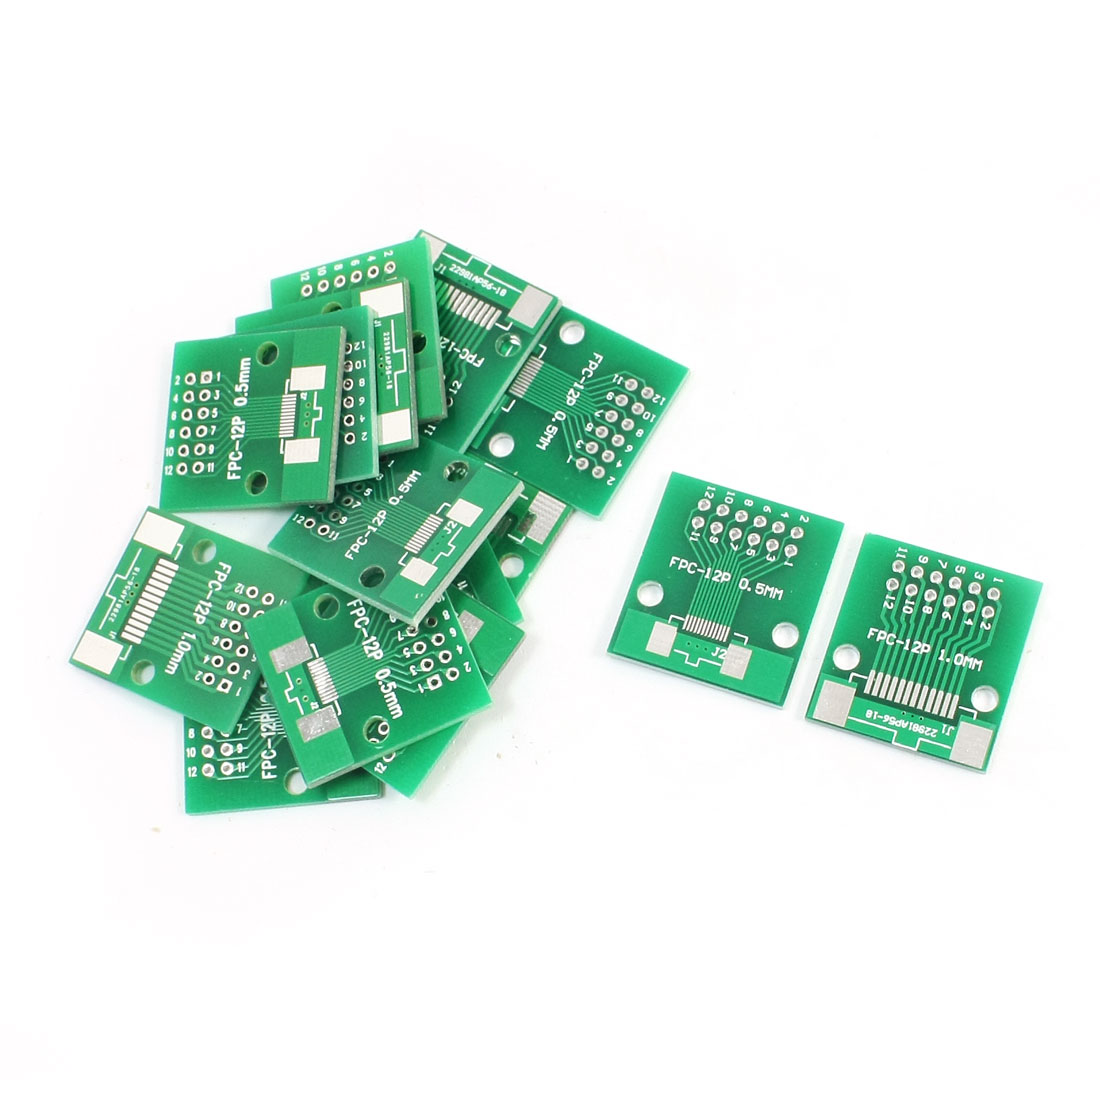 15Pcs FPC/FFC DIP12 to 0.5mm/1.0mm 2 Sides SMD IC PCB Adapter Plates